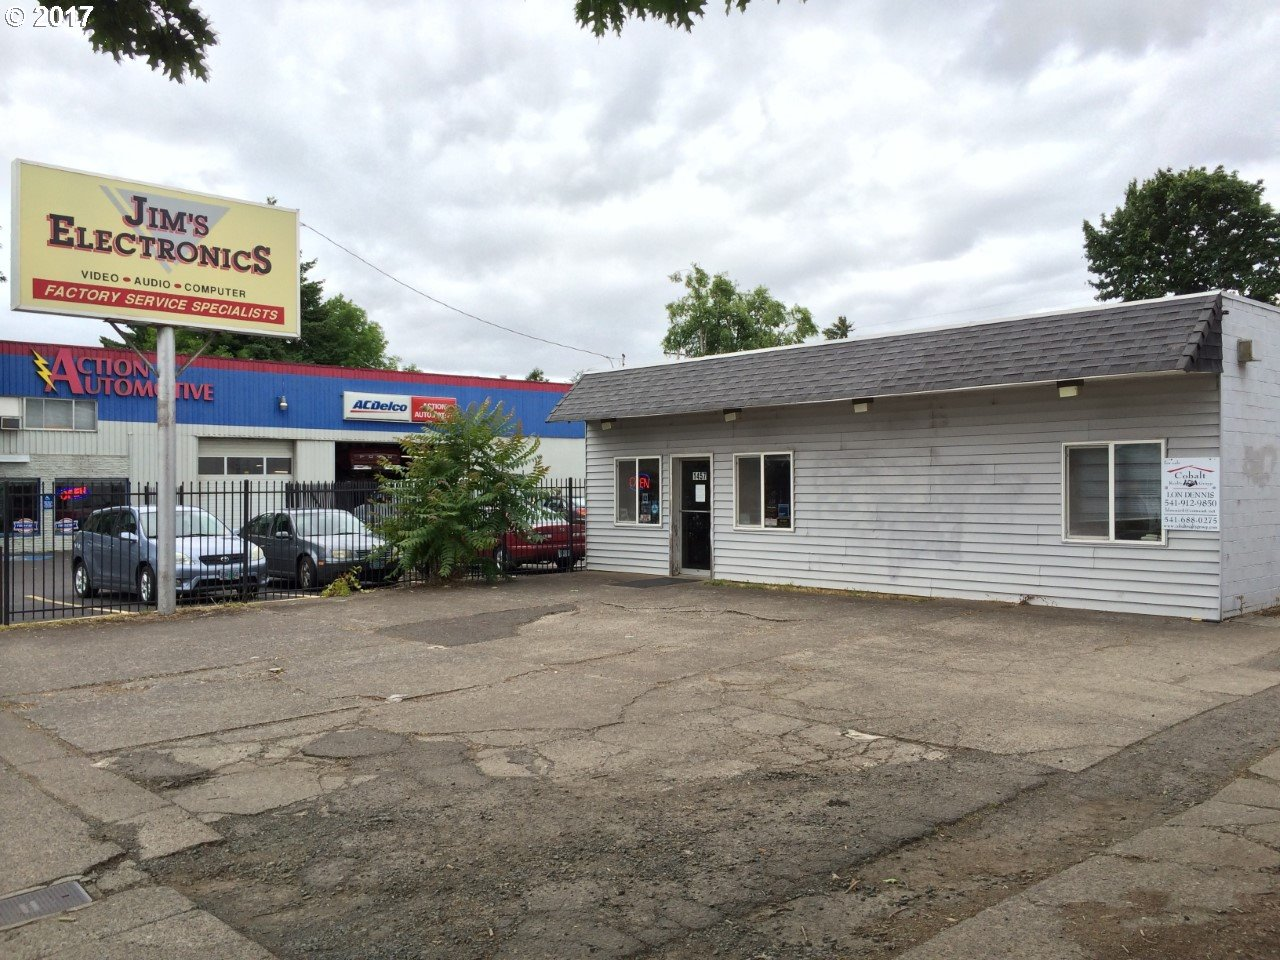 1457 W 6TH AVE, Eugene, OR 97402